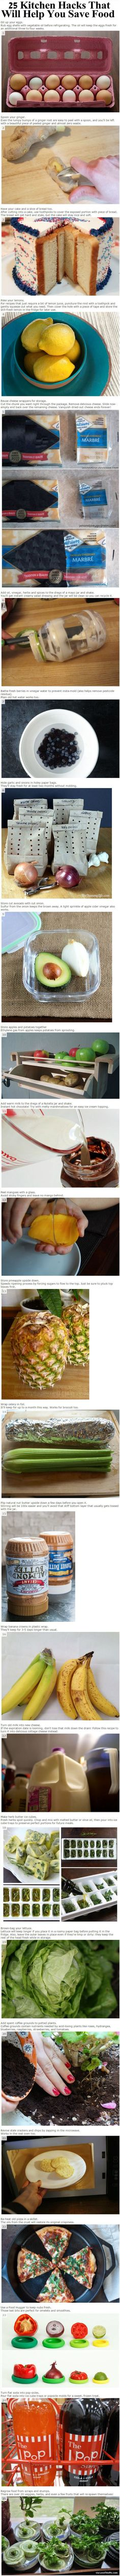 20 Kitchen Hacks That Will Help You Save Food